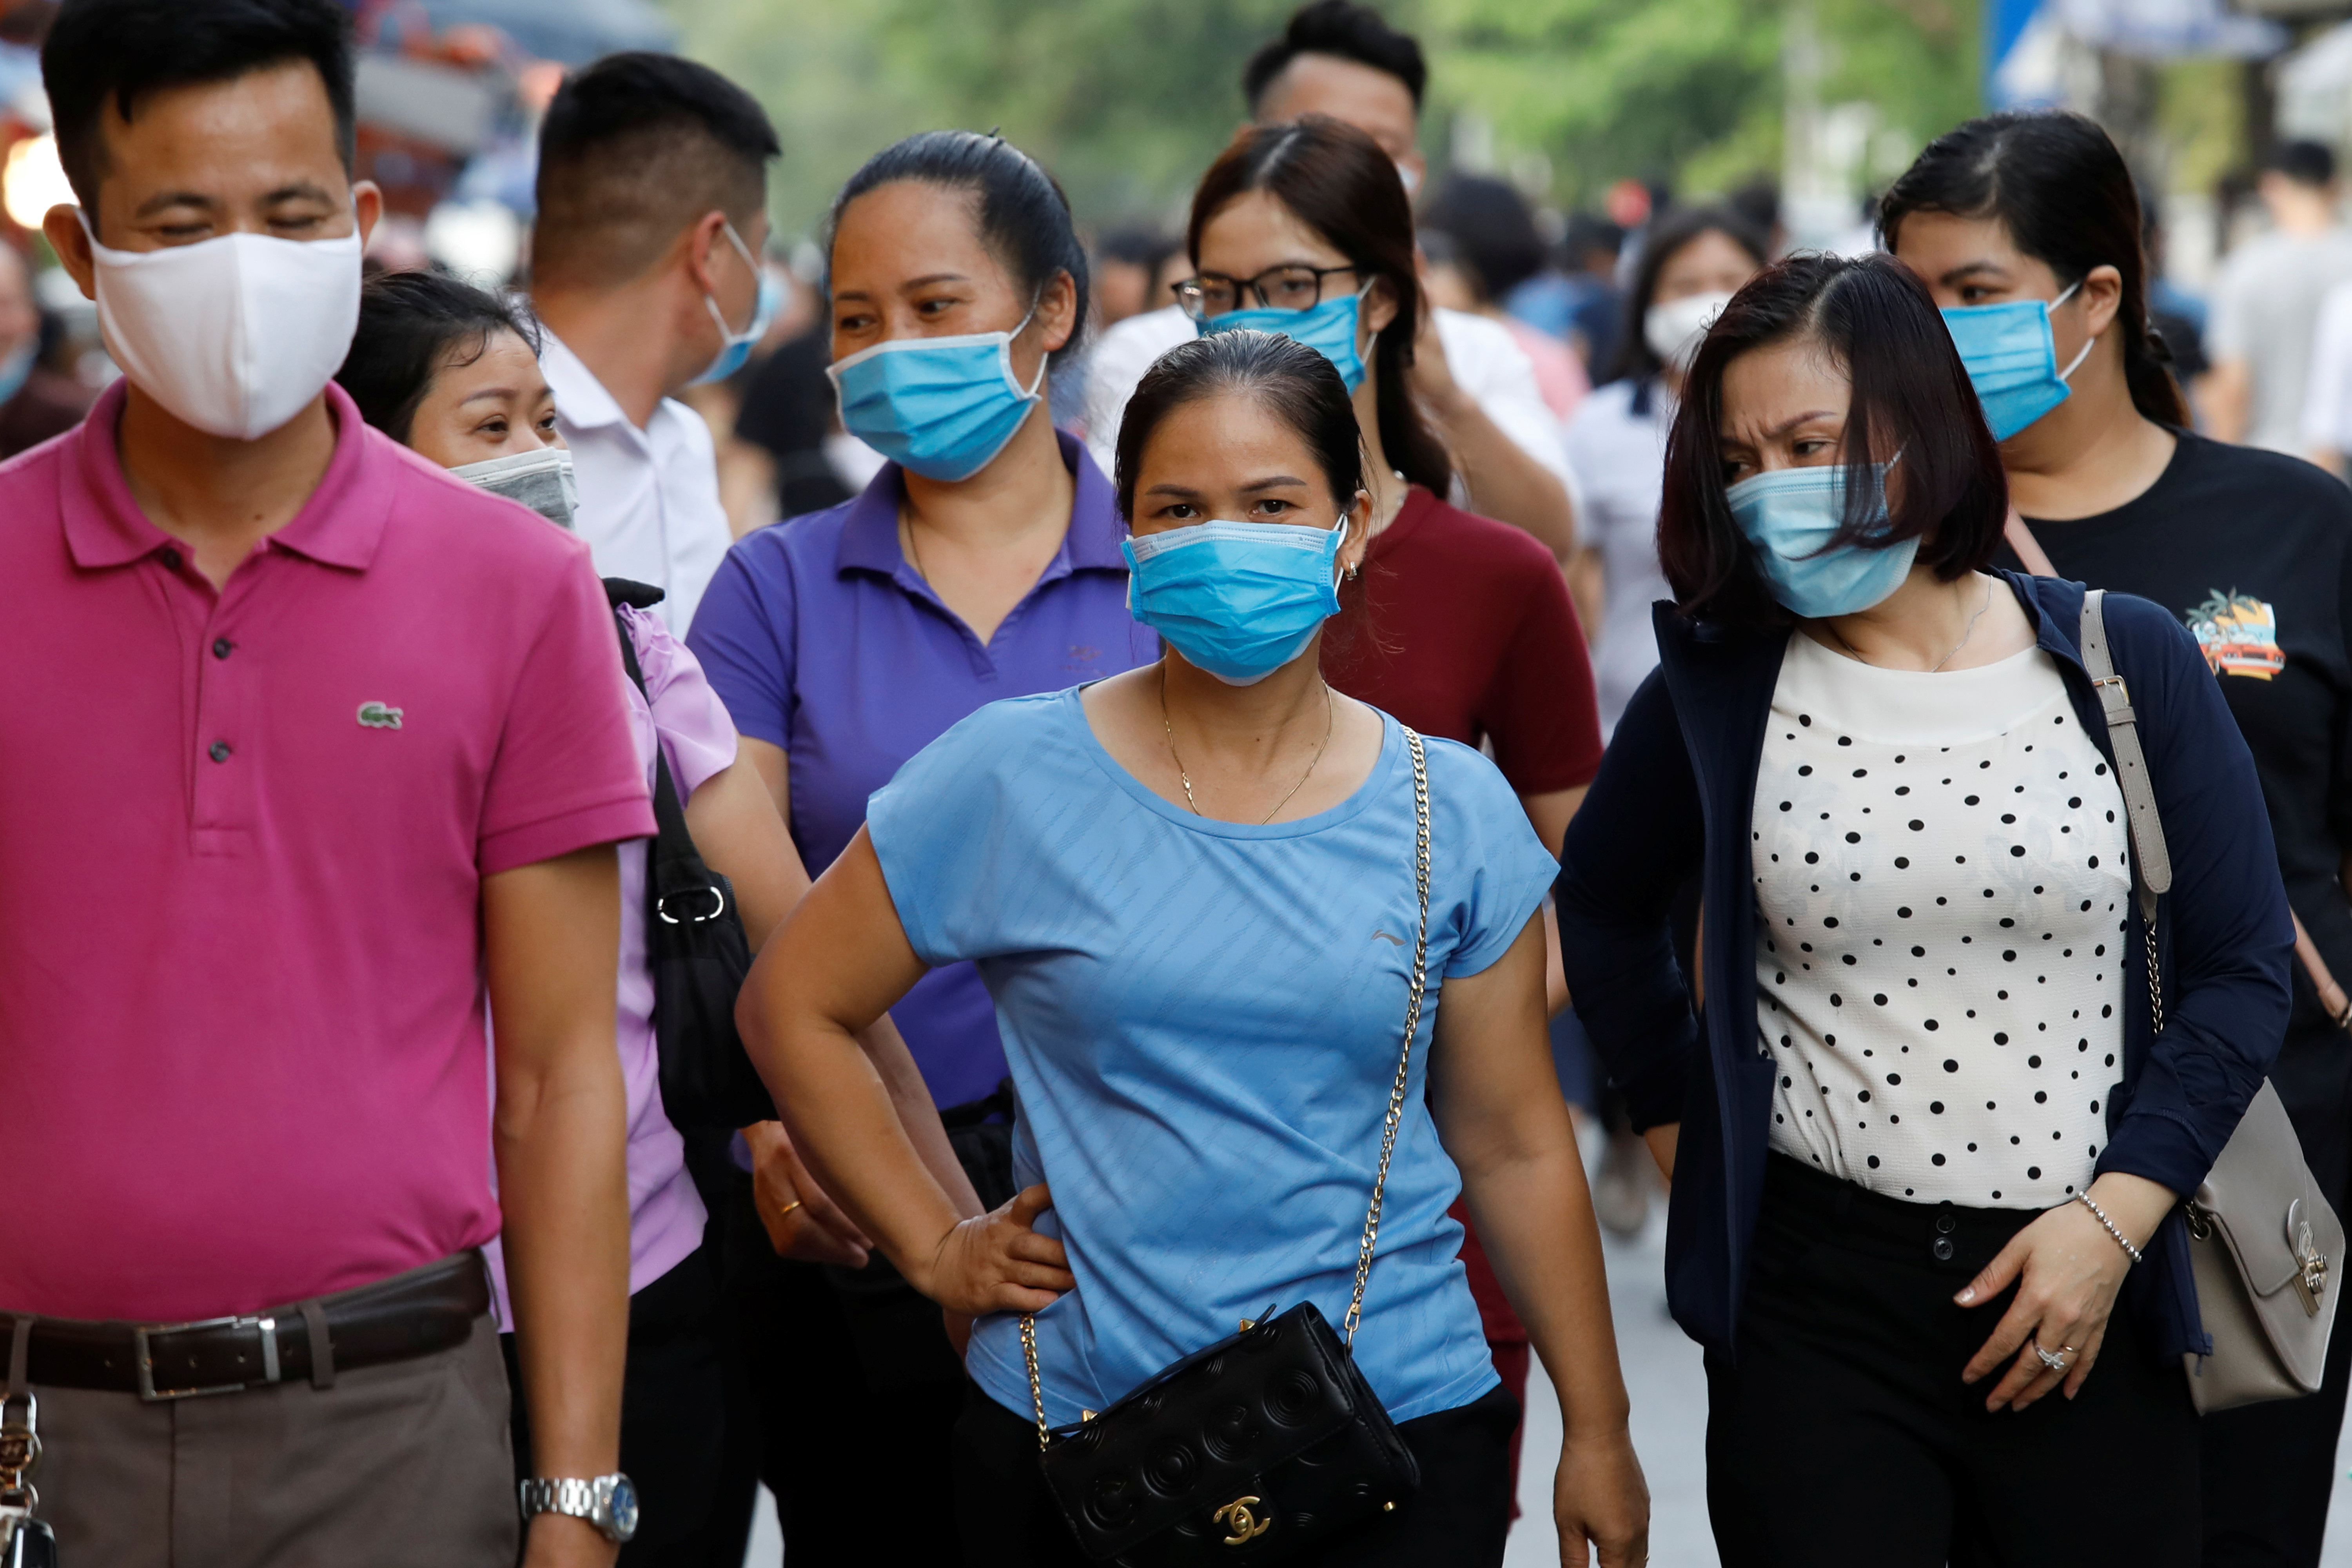 How has Viet Nam responded more effectively to the pandemic than many better-resourced nations?